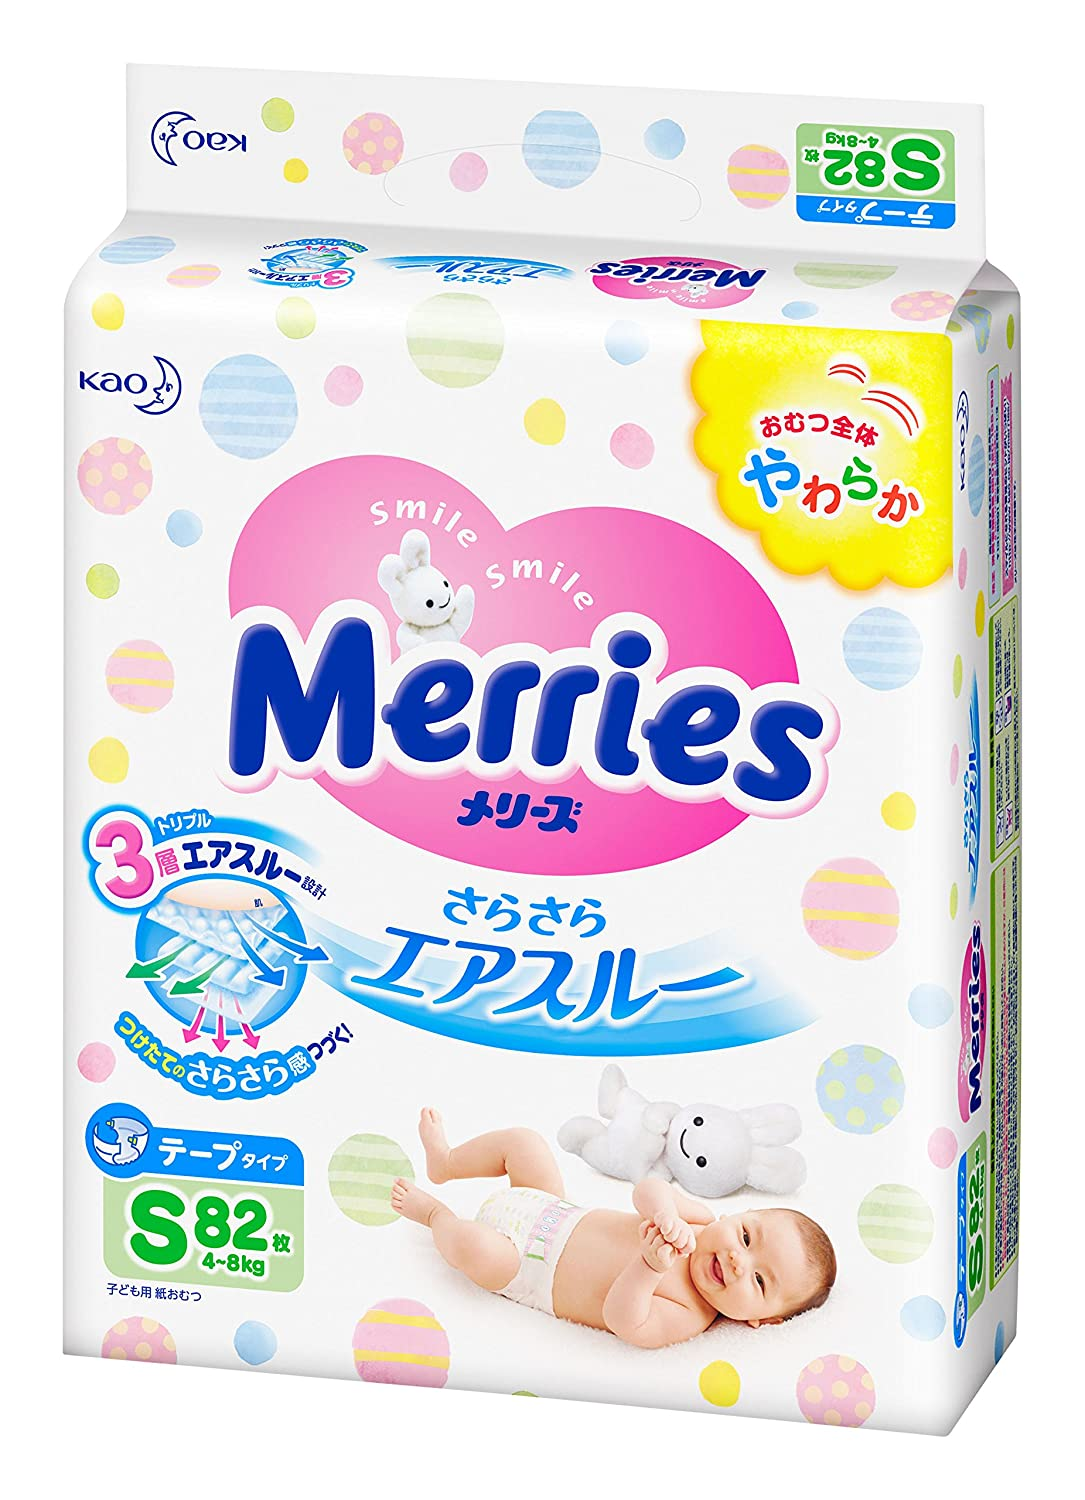 Japanische Windeln Merries S (4-8 kg) // Japanese diapers - nappies Merries S (4-8 kg) // Японские подгузники Merries S (4-8 кг) 230812